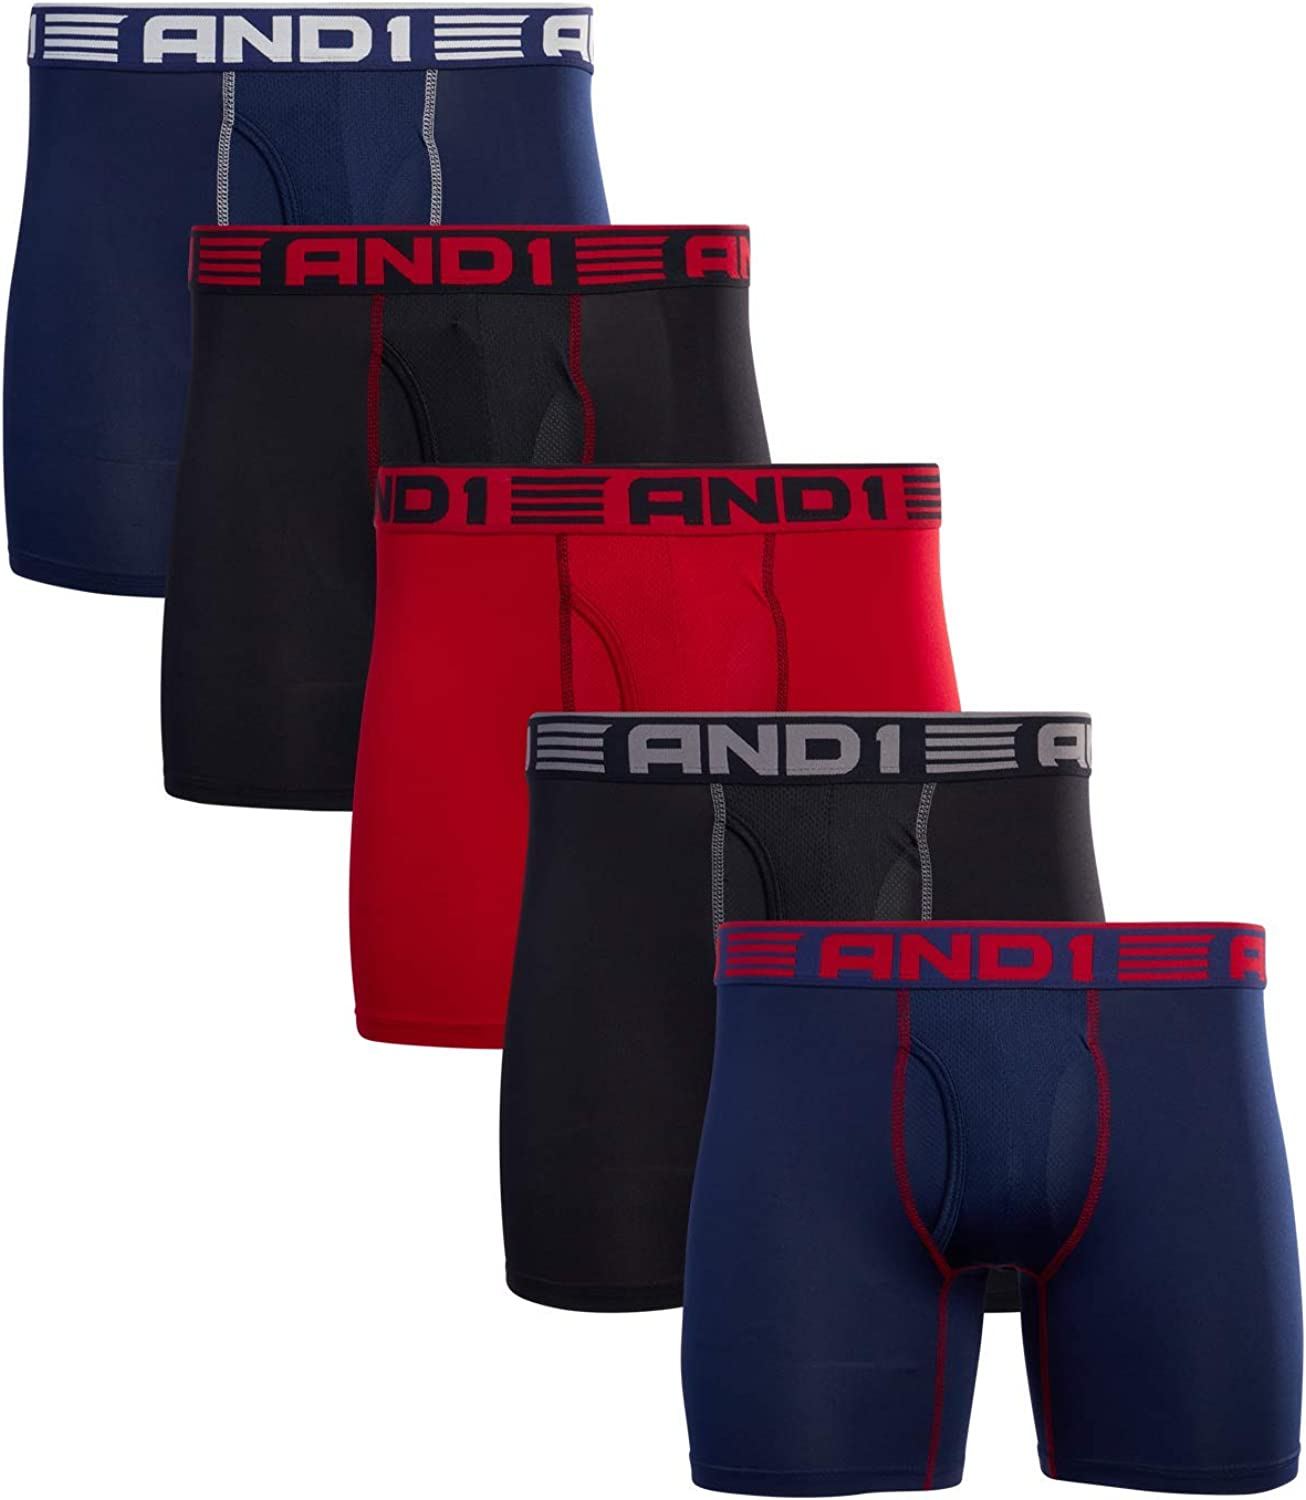 AND1 Men's Underwear - Performance Compression Boxer Briefs with Functional Fly (4 or 5 Pack)